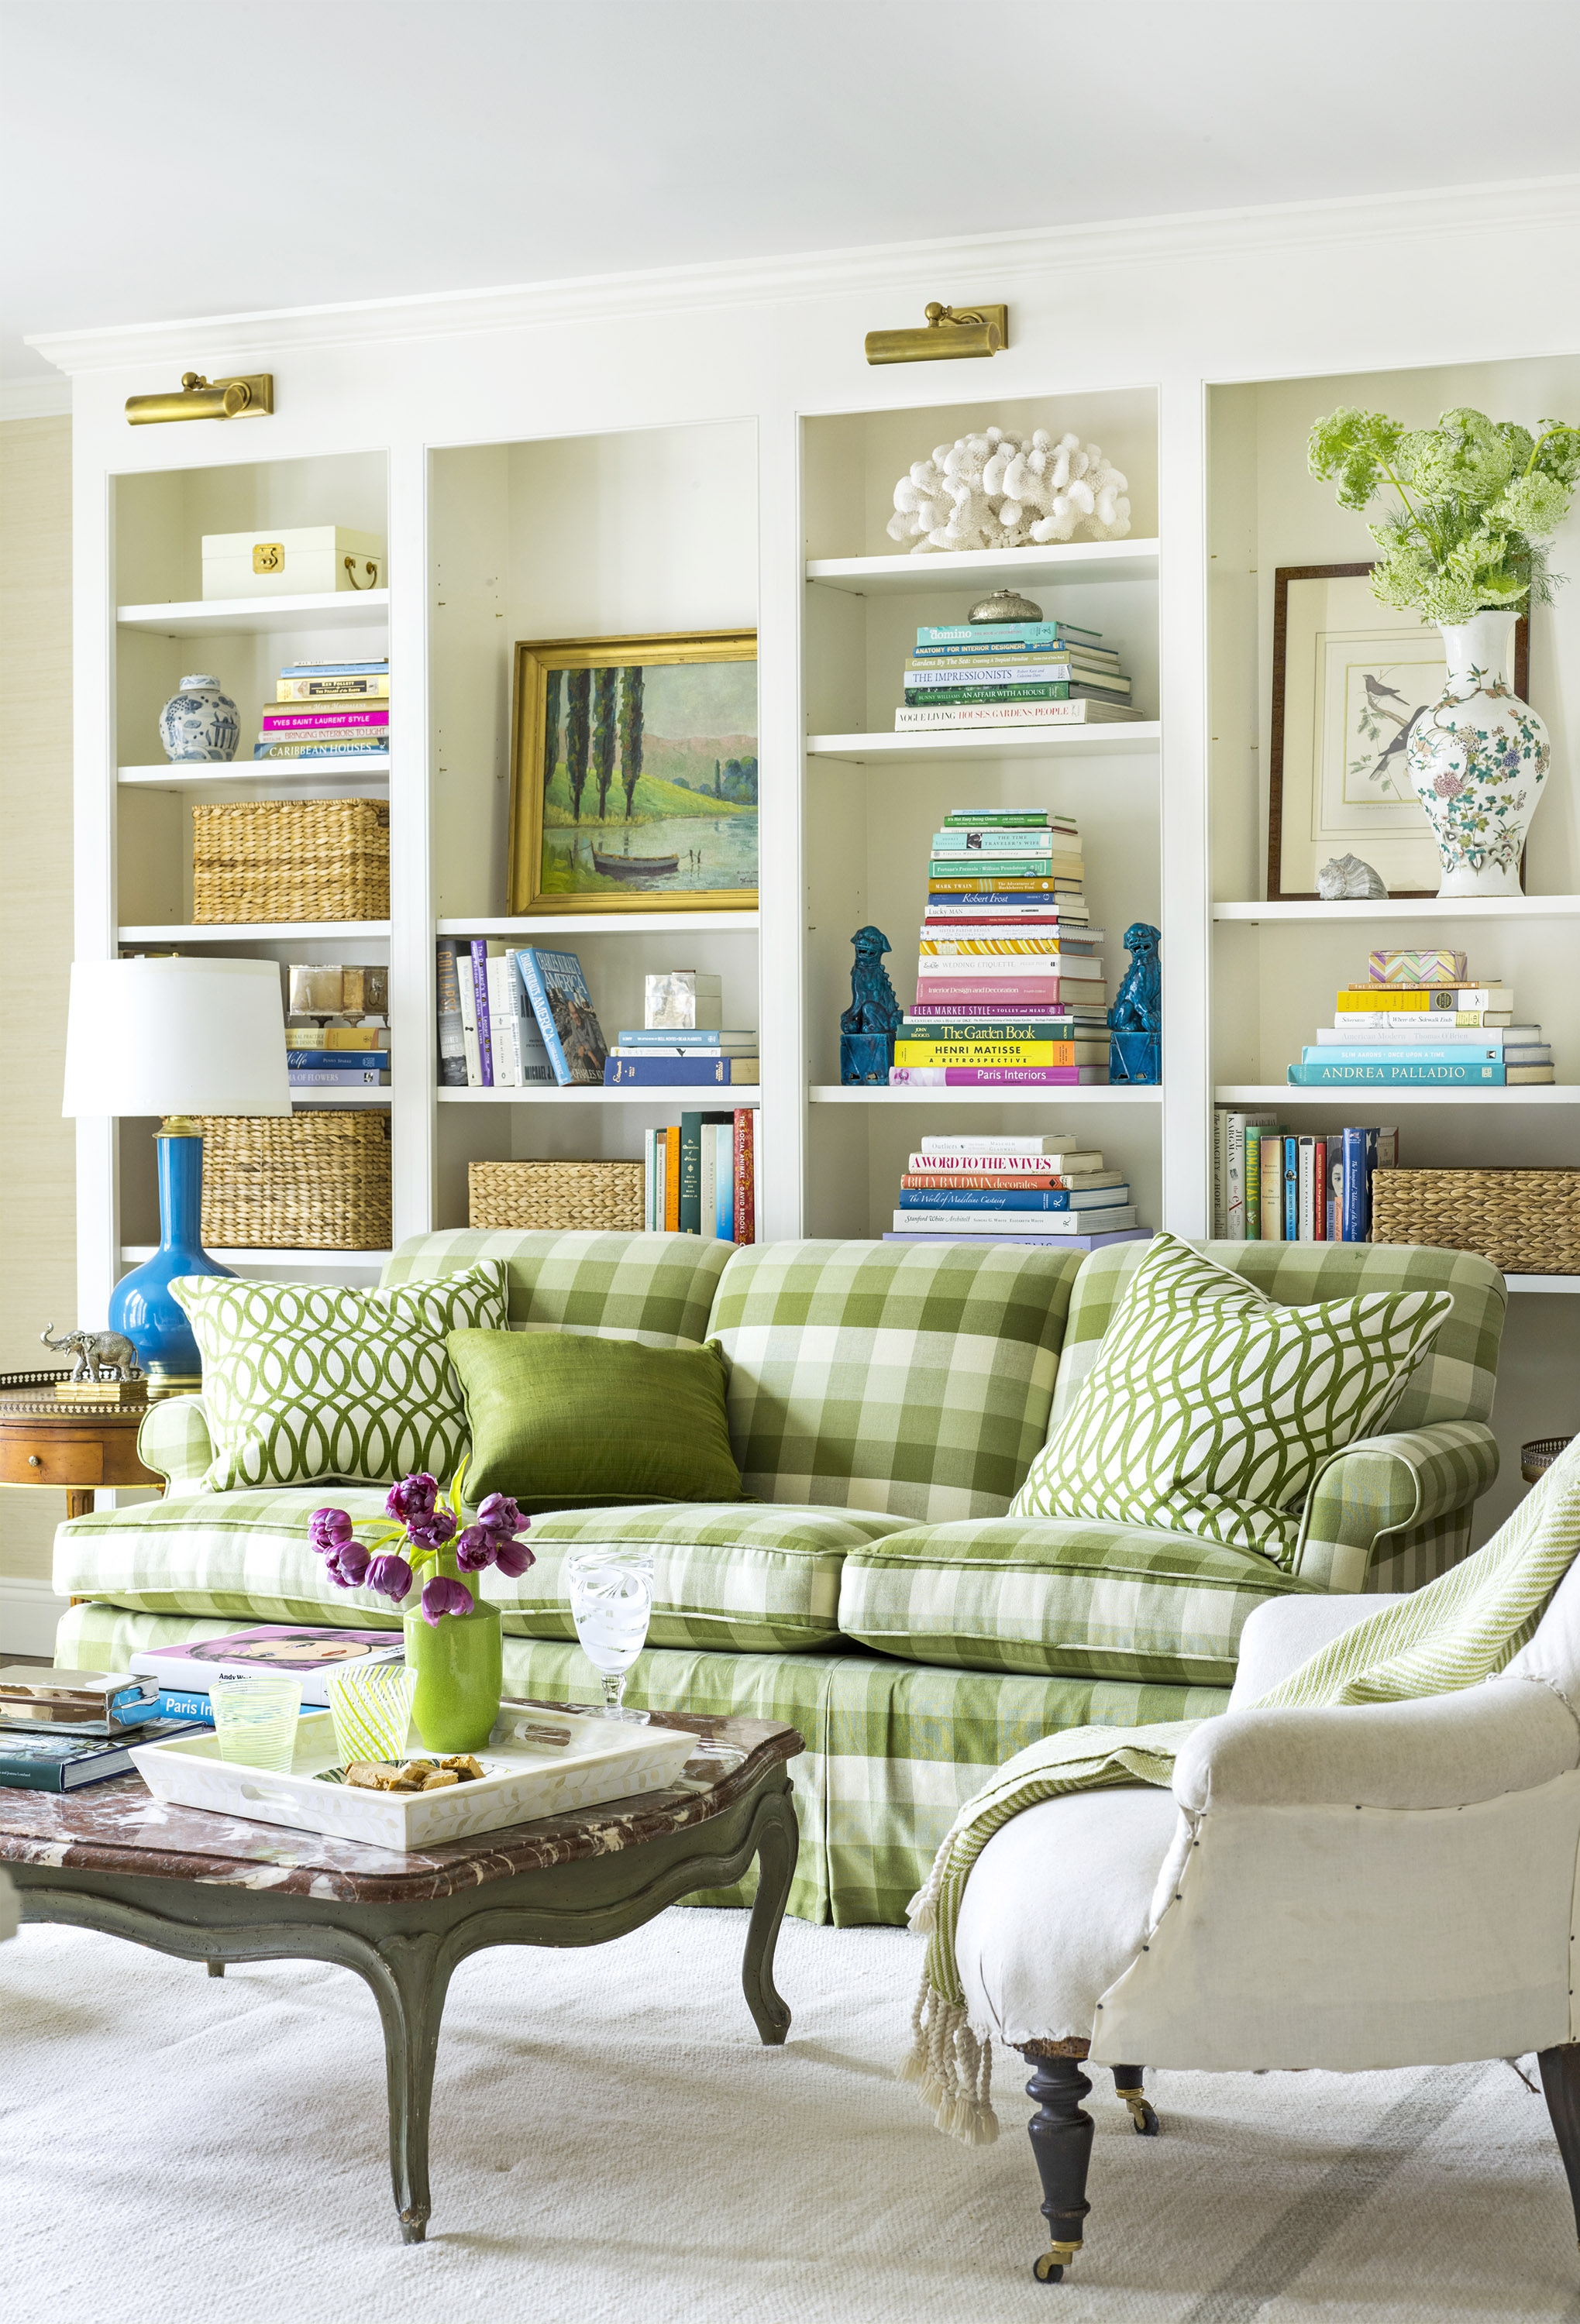 43 Ideas For Green Rooms And Home